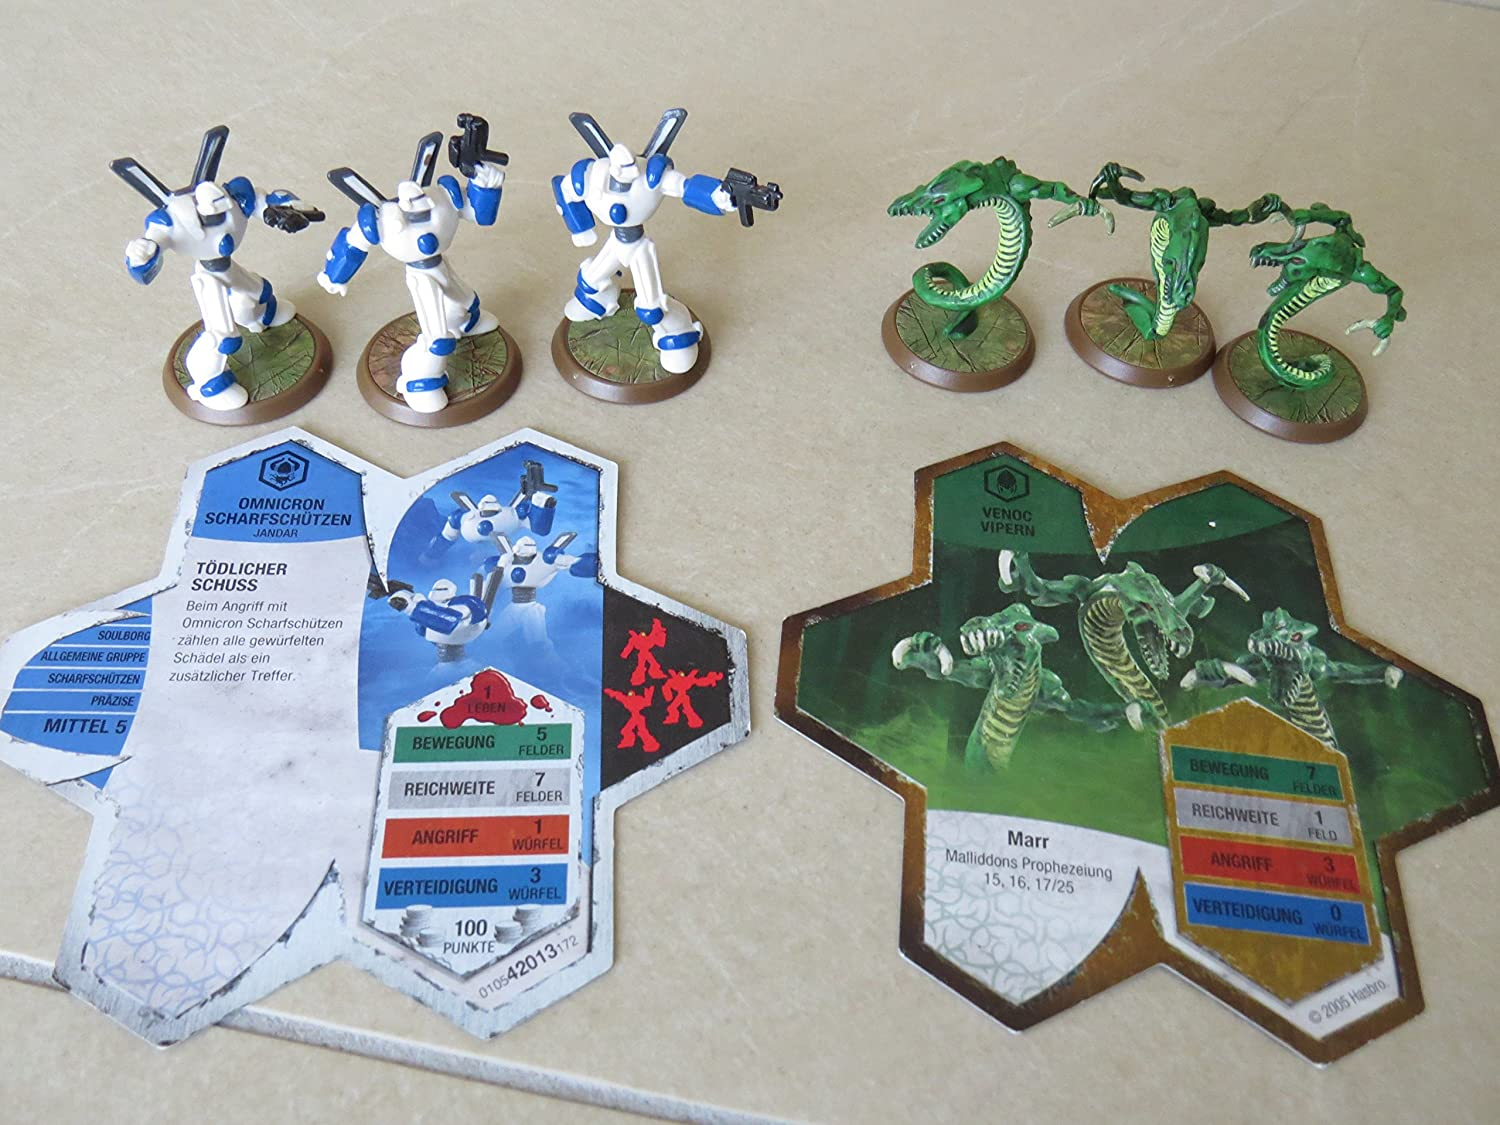 HeroScape  Malliddon's Prophecy  Snipers and Vipers by Wizards of the Coast